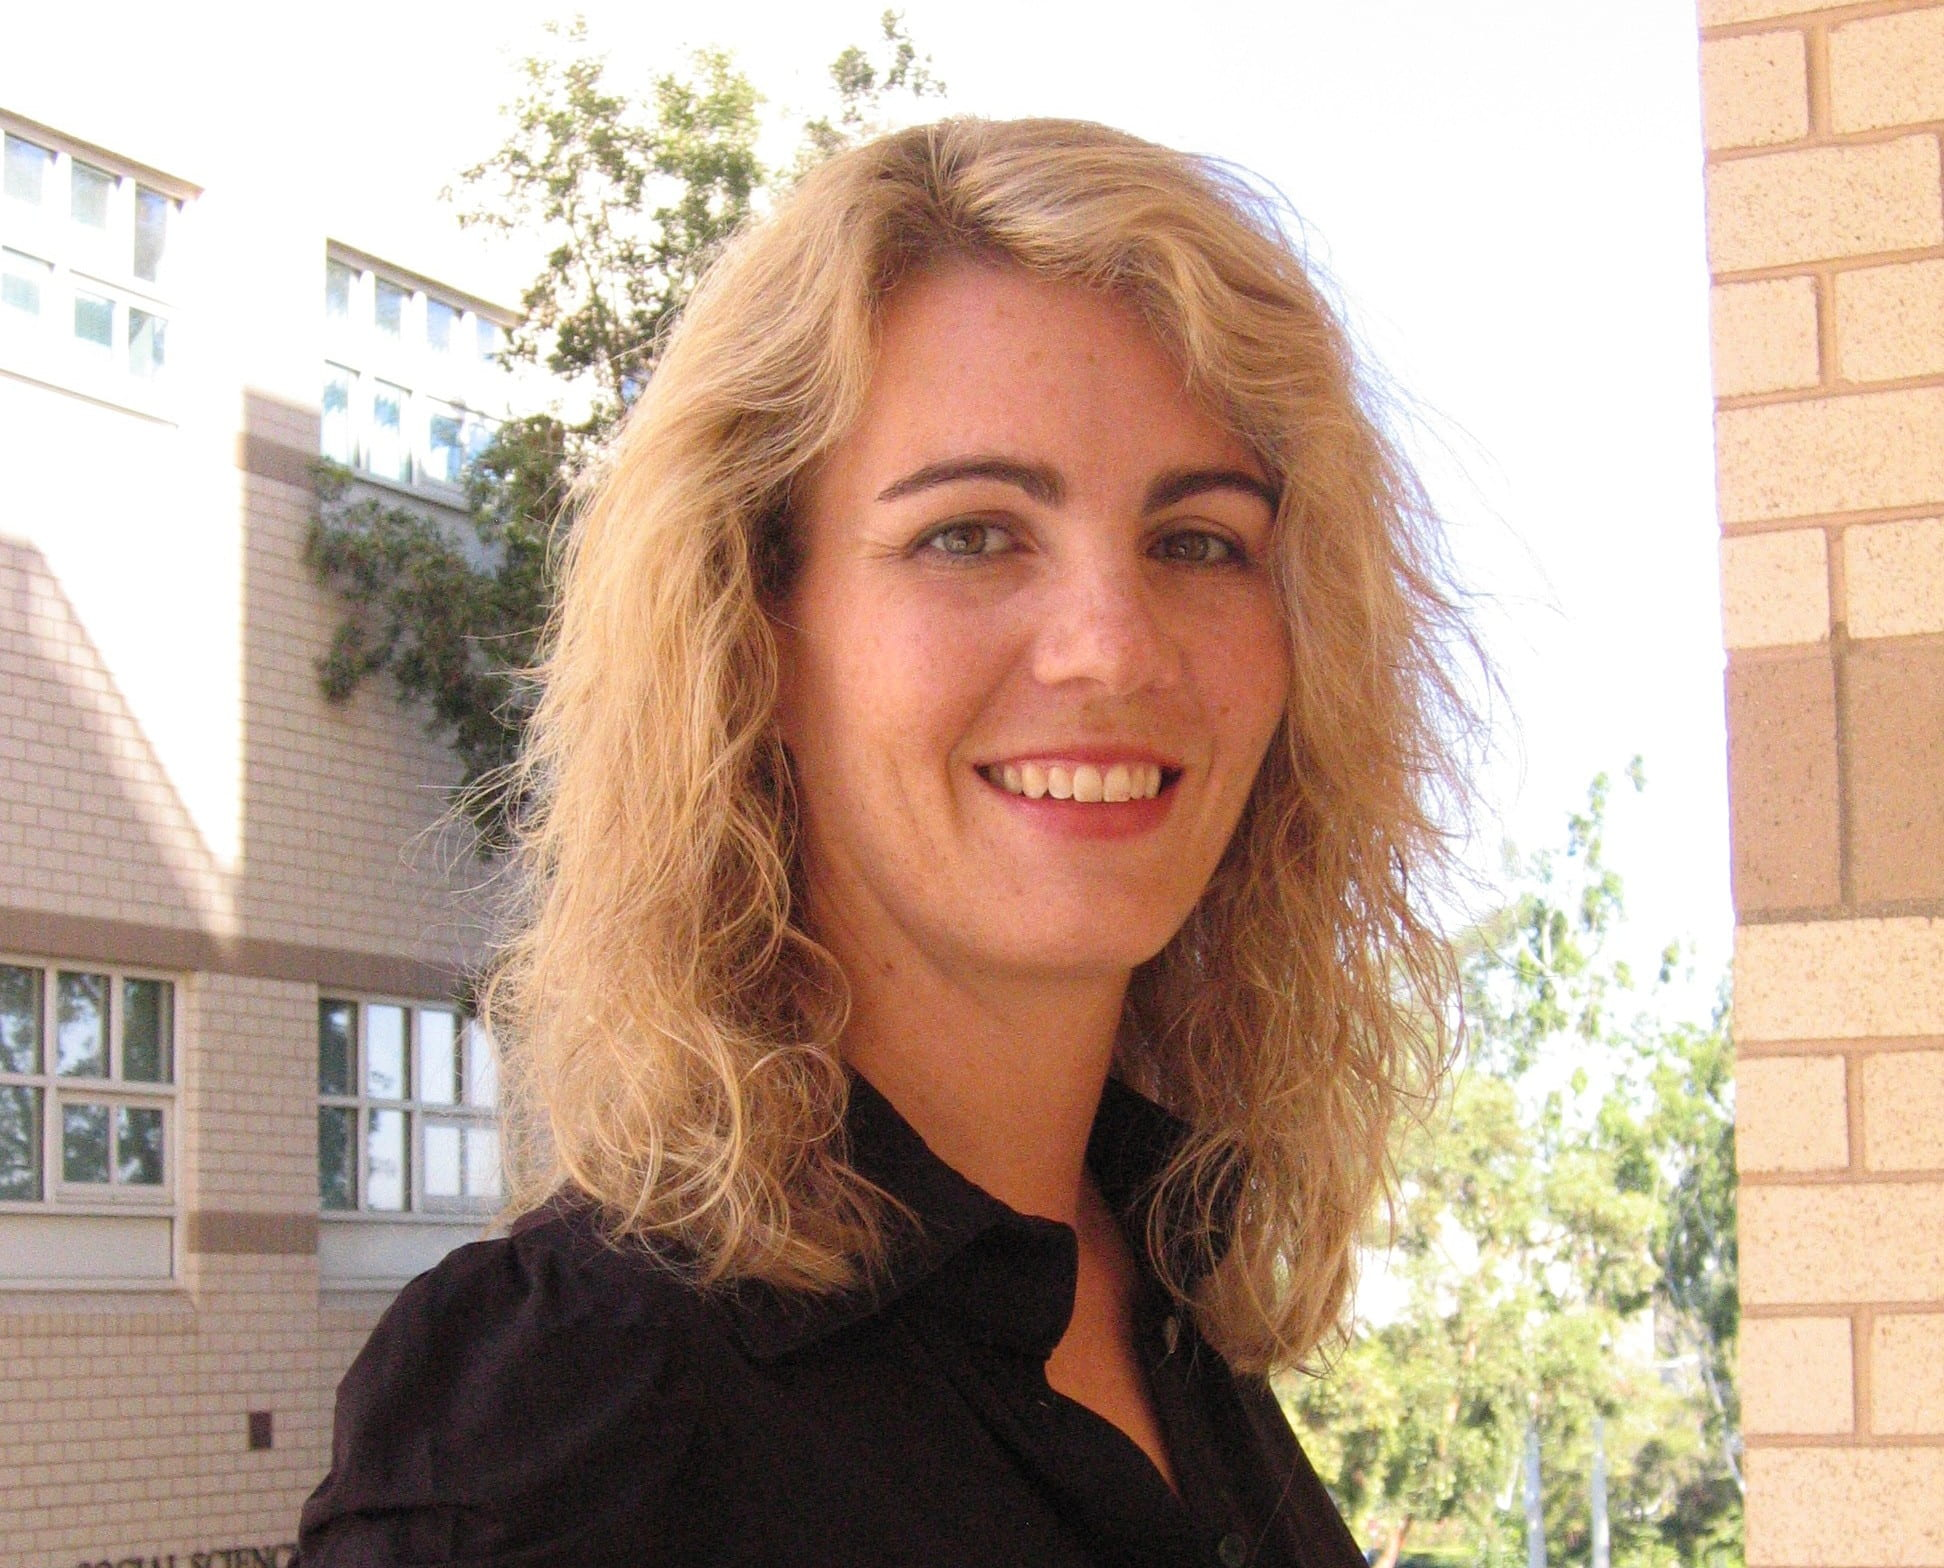 uci study sheds new light on low light vision could aid people lead author alyssa brewer is a uci assistant professor of cognitive sciences who studies brain functions related to eyesight through brain imaging and